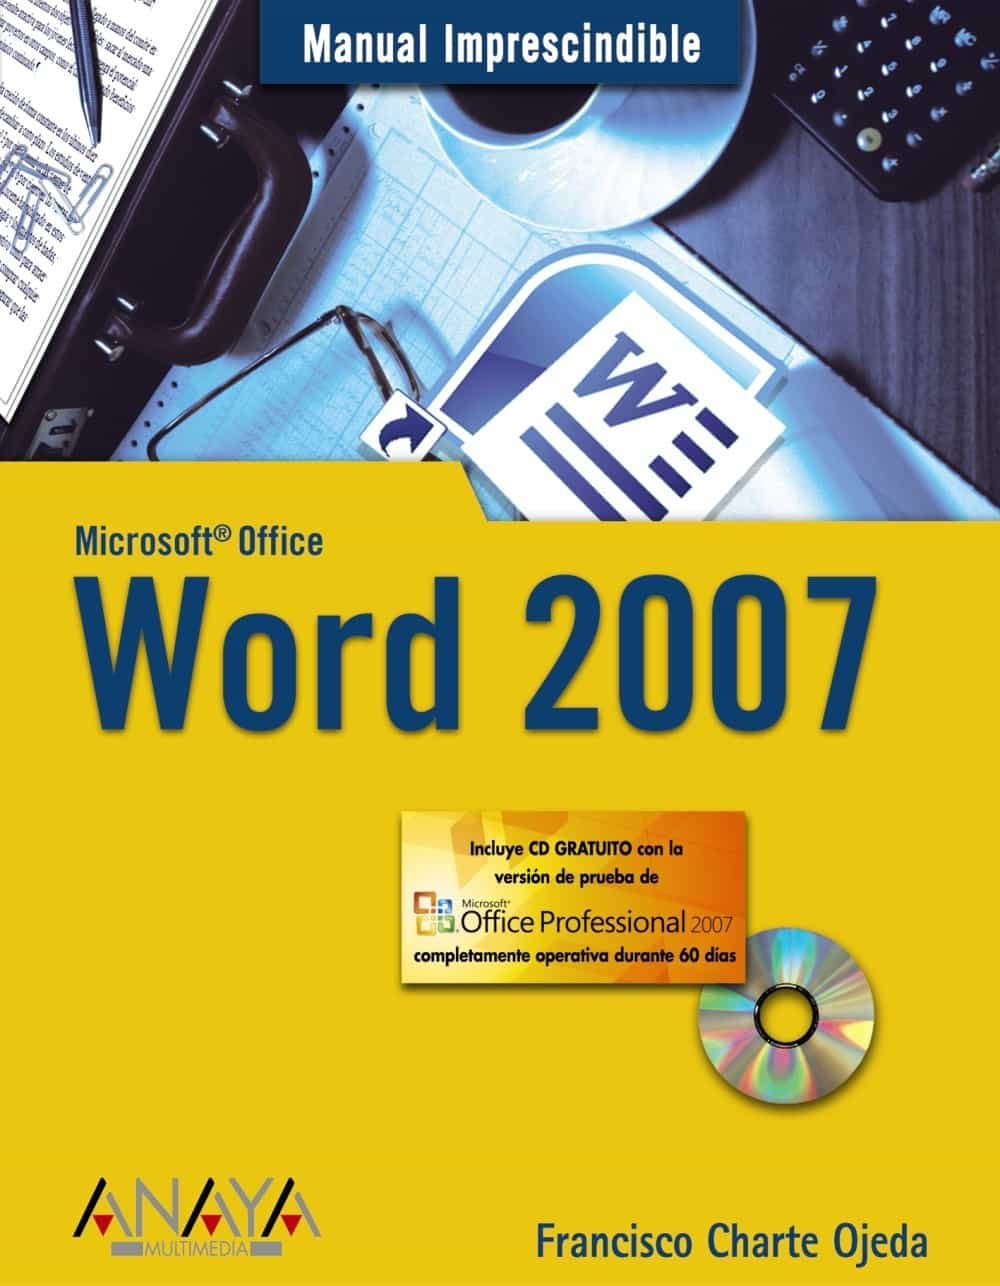 Word 2007 (manual Imprescindible) (incluye Cd-rom) por Francisco Charte epub